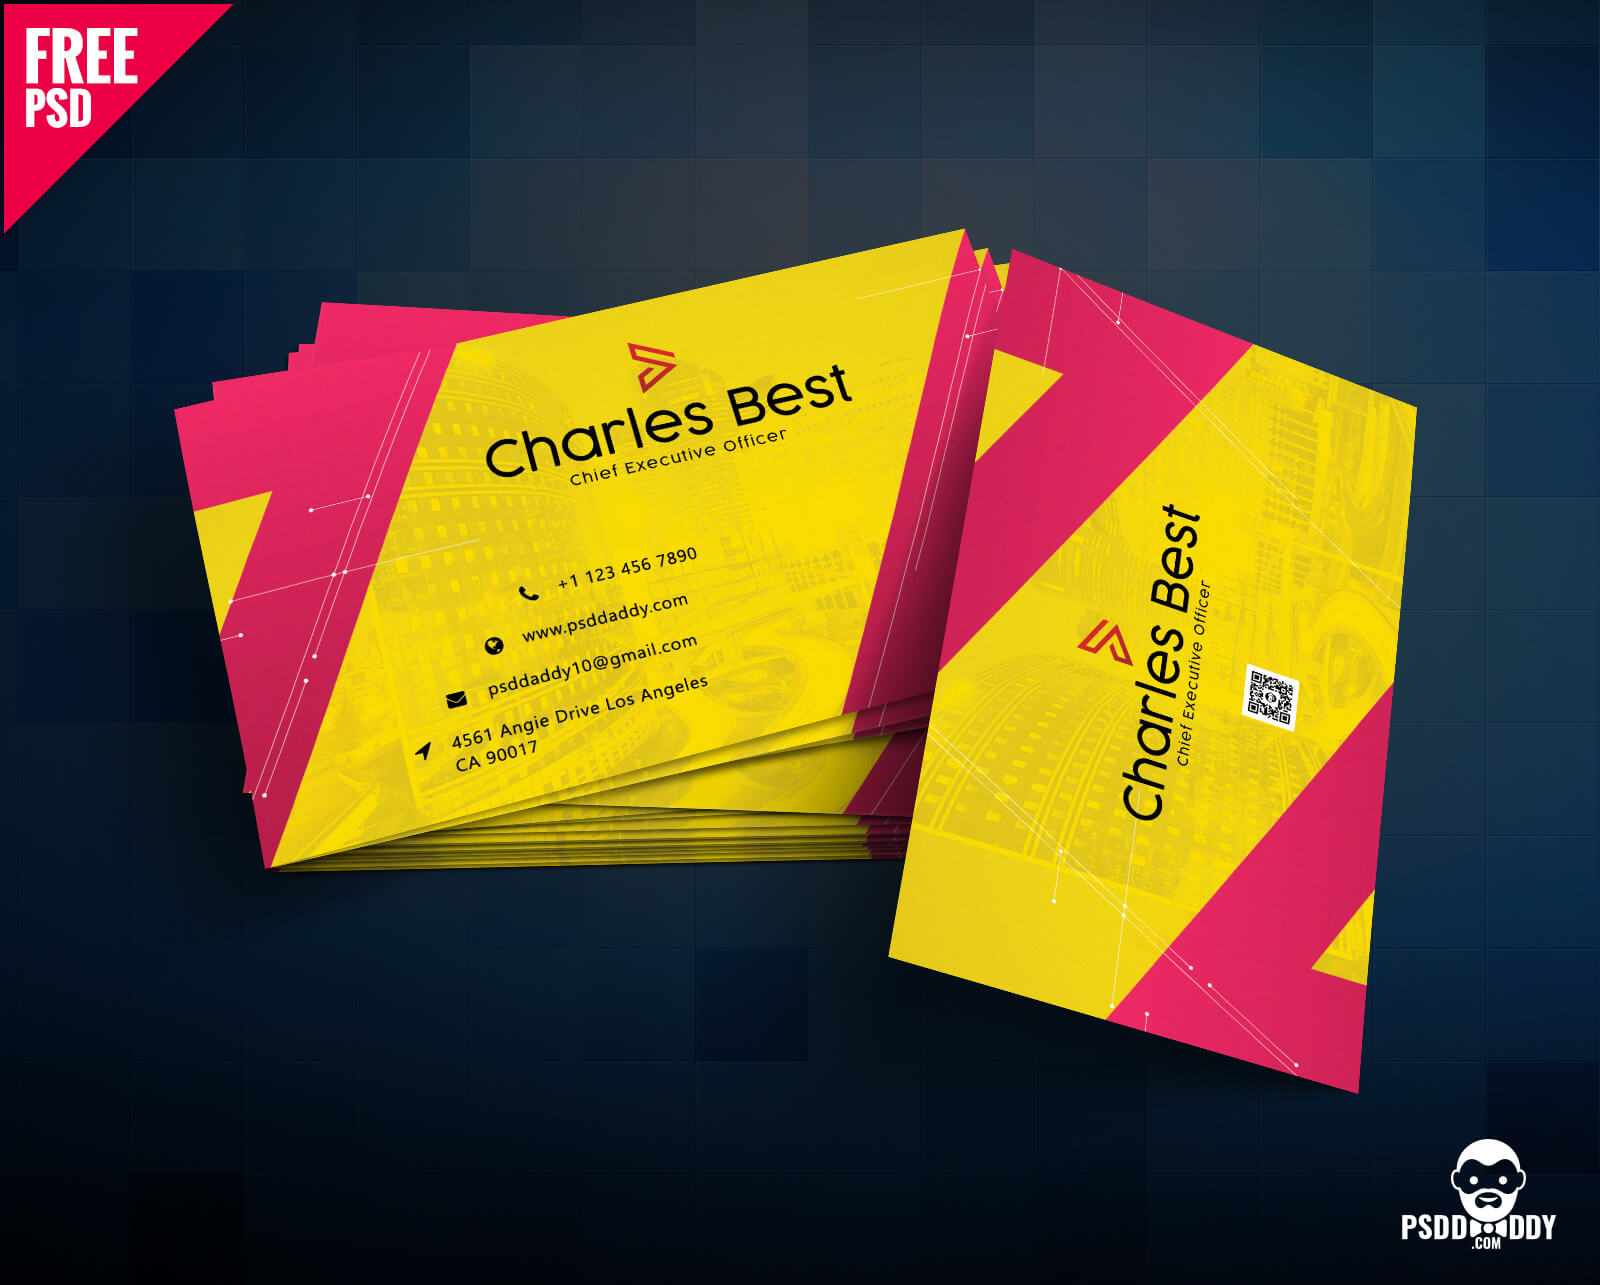 Download] Creative Business Card Free Psd | Psddaddy Regarding Business Card Maker Template